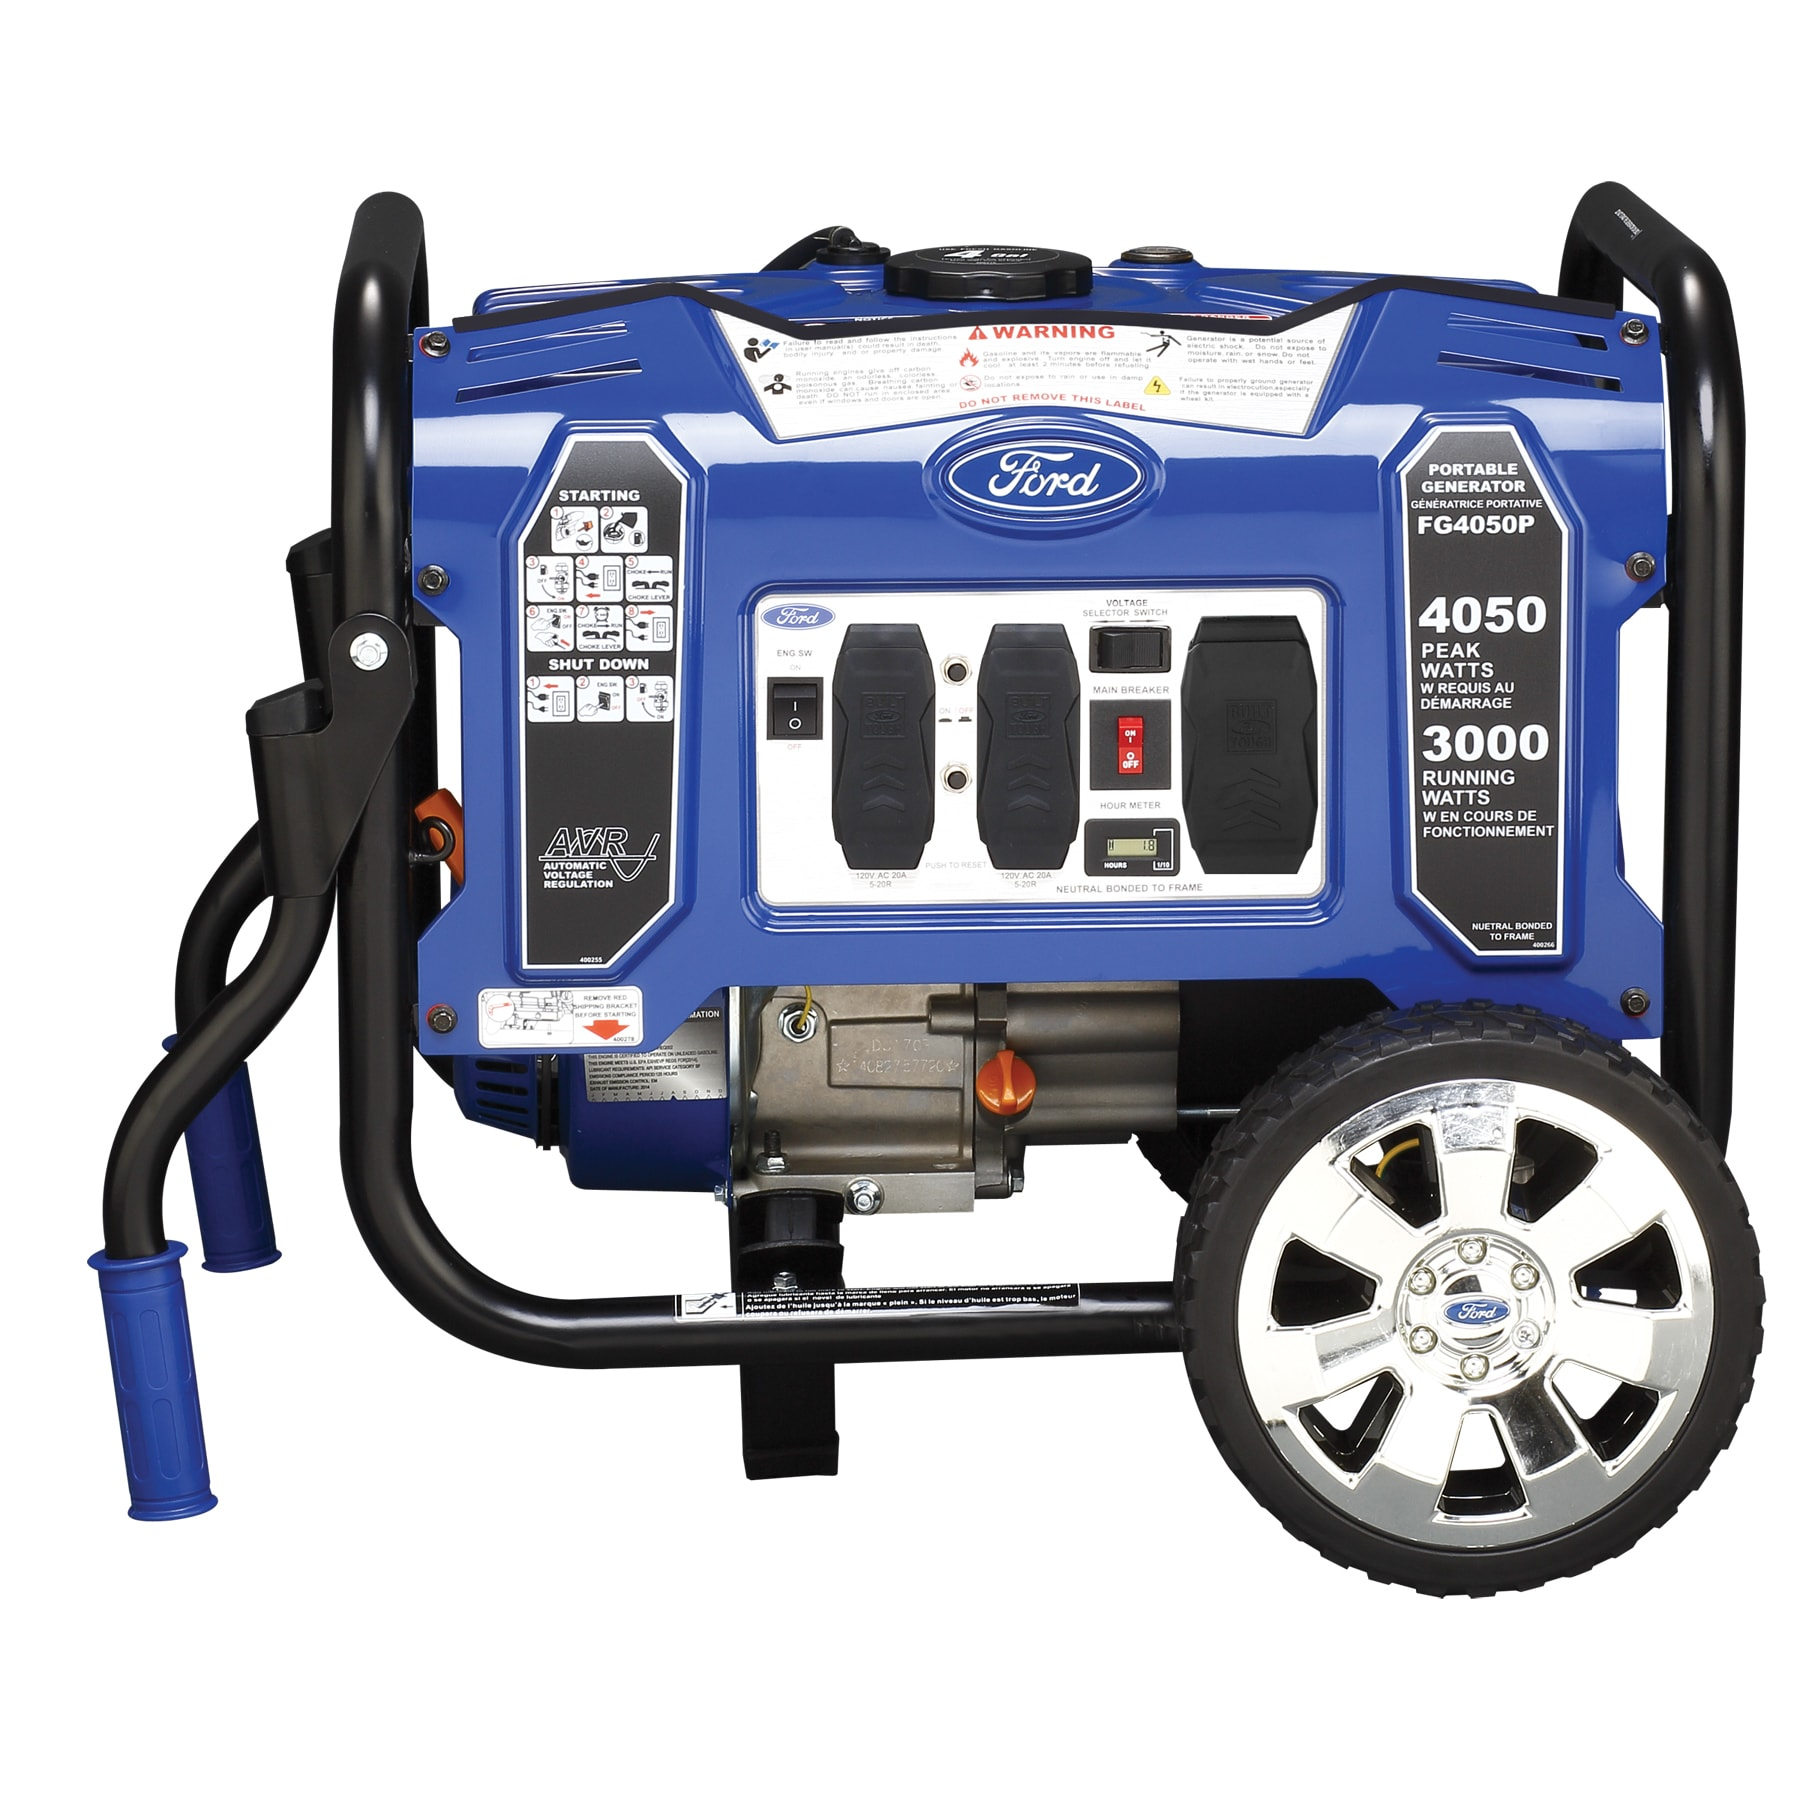 Ford 4050 watt Portable Generator Free Shipping Today